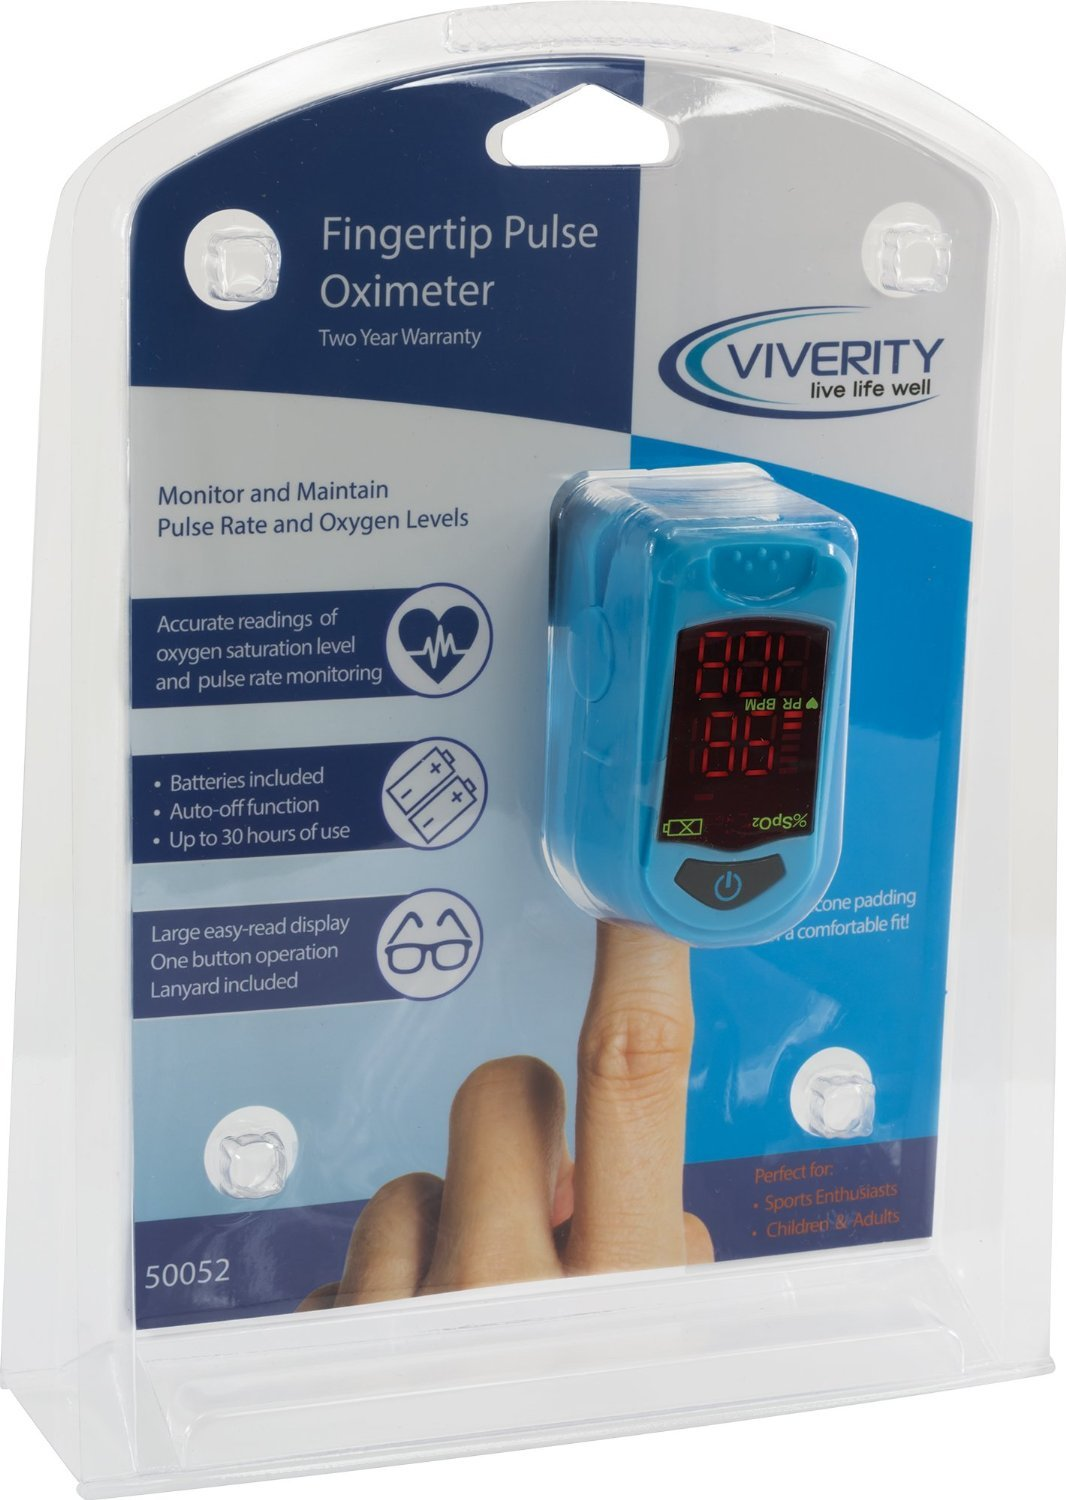 Viverity Pulse Oximeter Fingertip Oxygen Saturation Monitor- Pulse Ox Oxygen Monitor - OTC Finger Heart Rate Monitor, Pediatric and Adult Use by Roscoe Medical